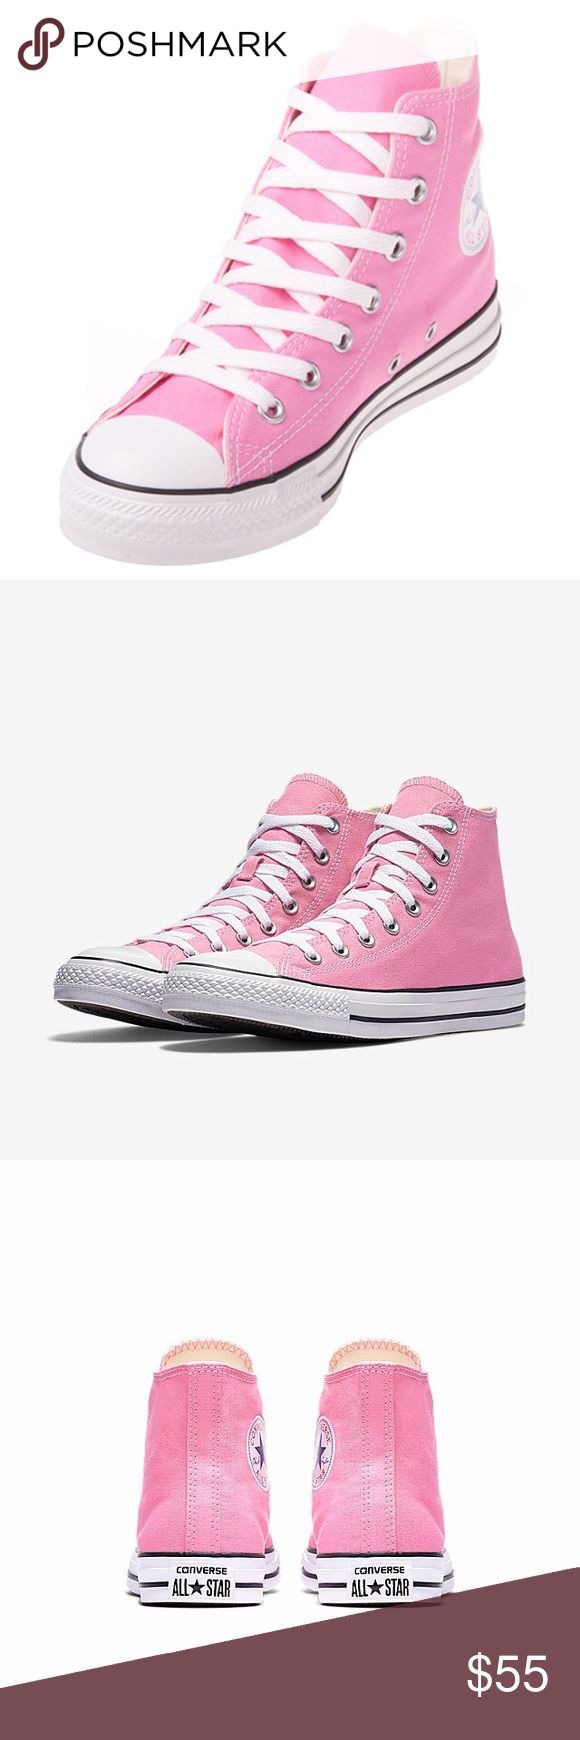 🔥1 HOUR SALE 🔥Pink High Top Converse! Brand New Pink converse All-Star Chuck Taylor High Top Sneakers. New,never worn. Converse Shoes Sneakers